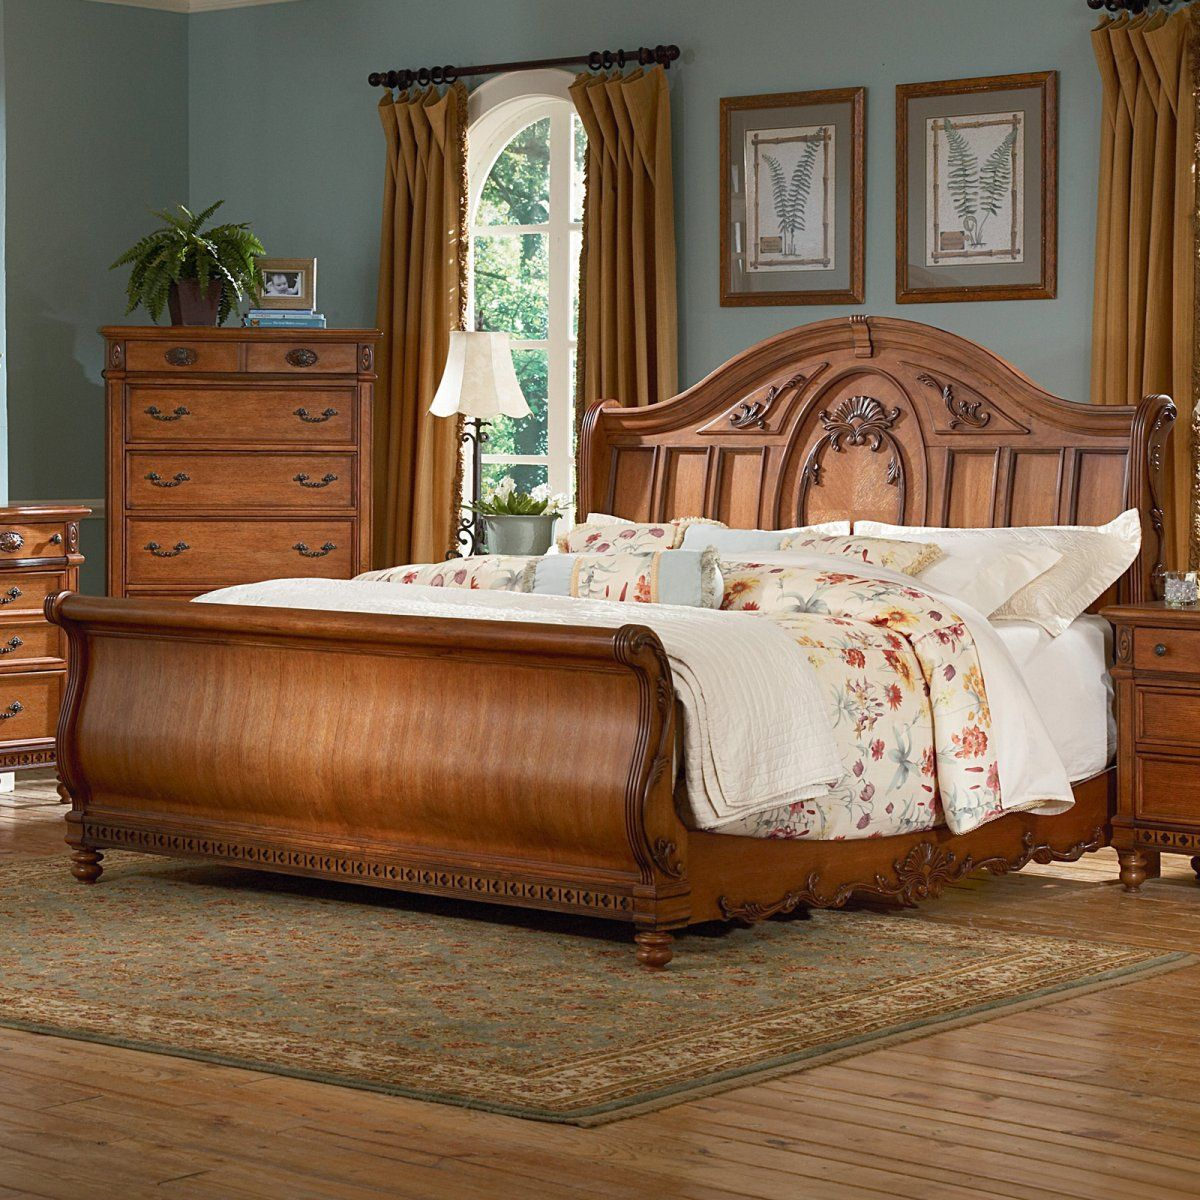 Oak Furniture Bedroom Sets Hayneedle Bedroom Furniture Bedroom Sets Southern Heritage Oak